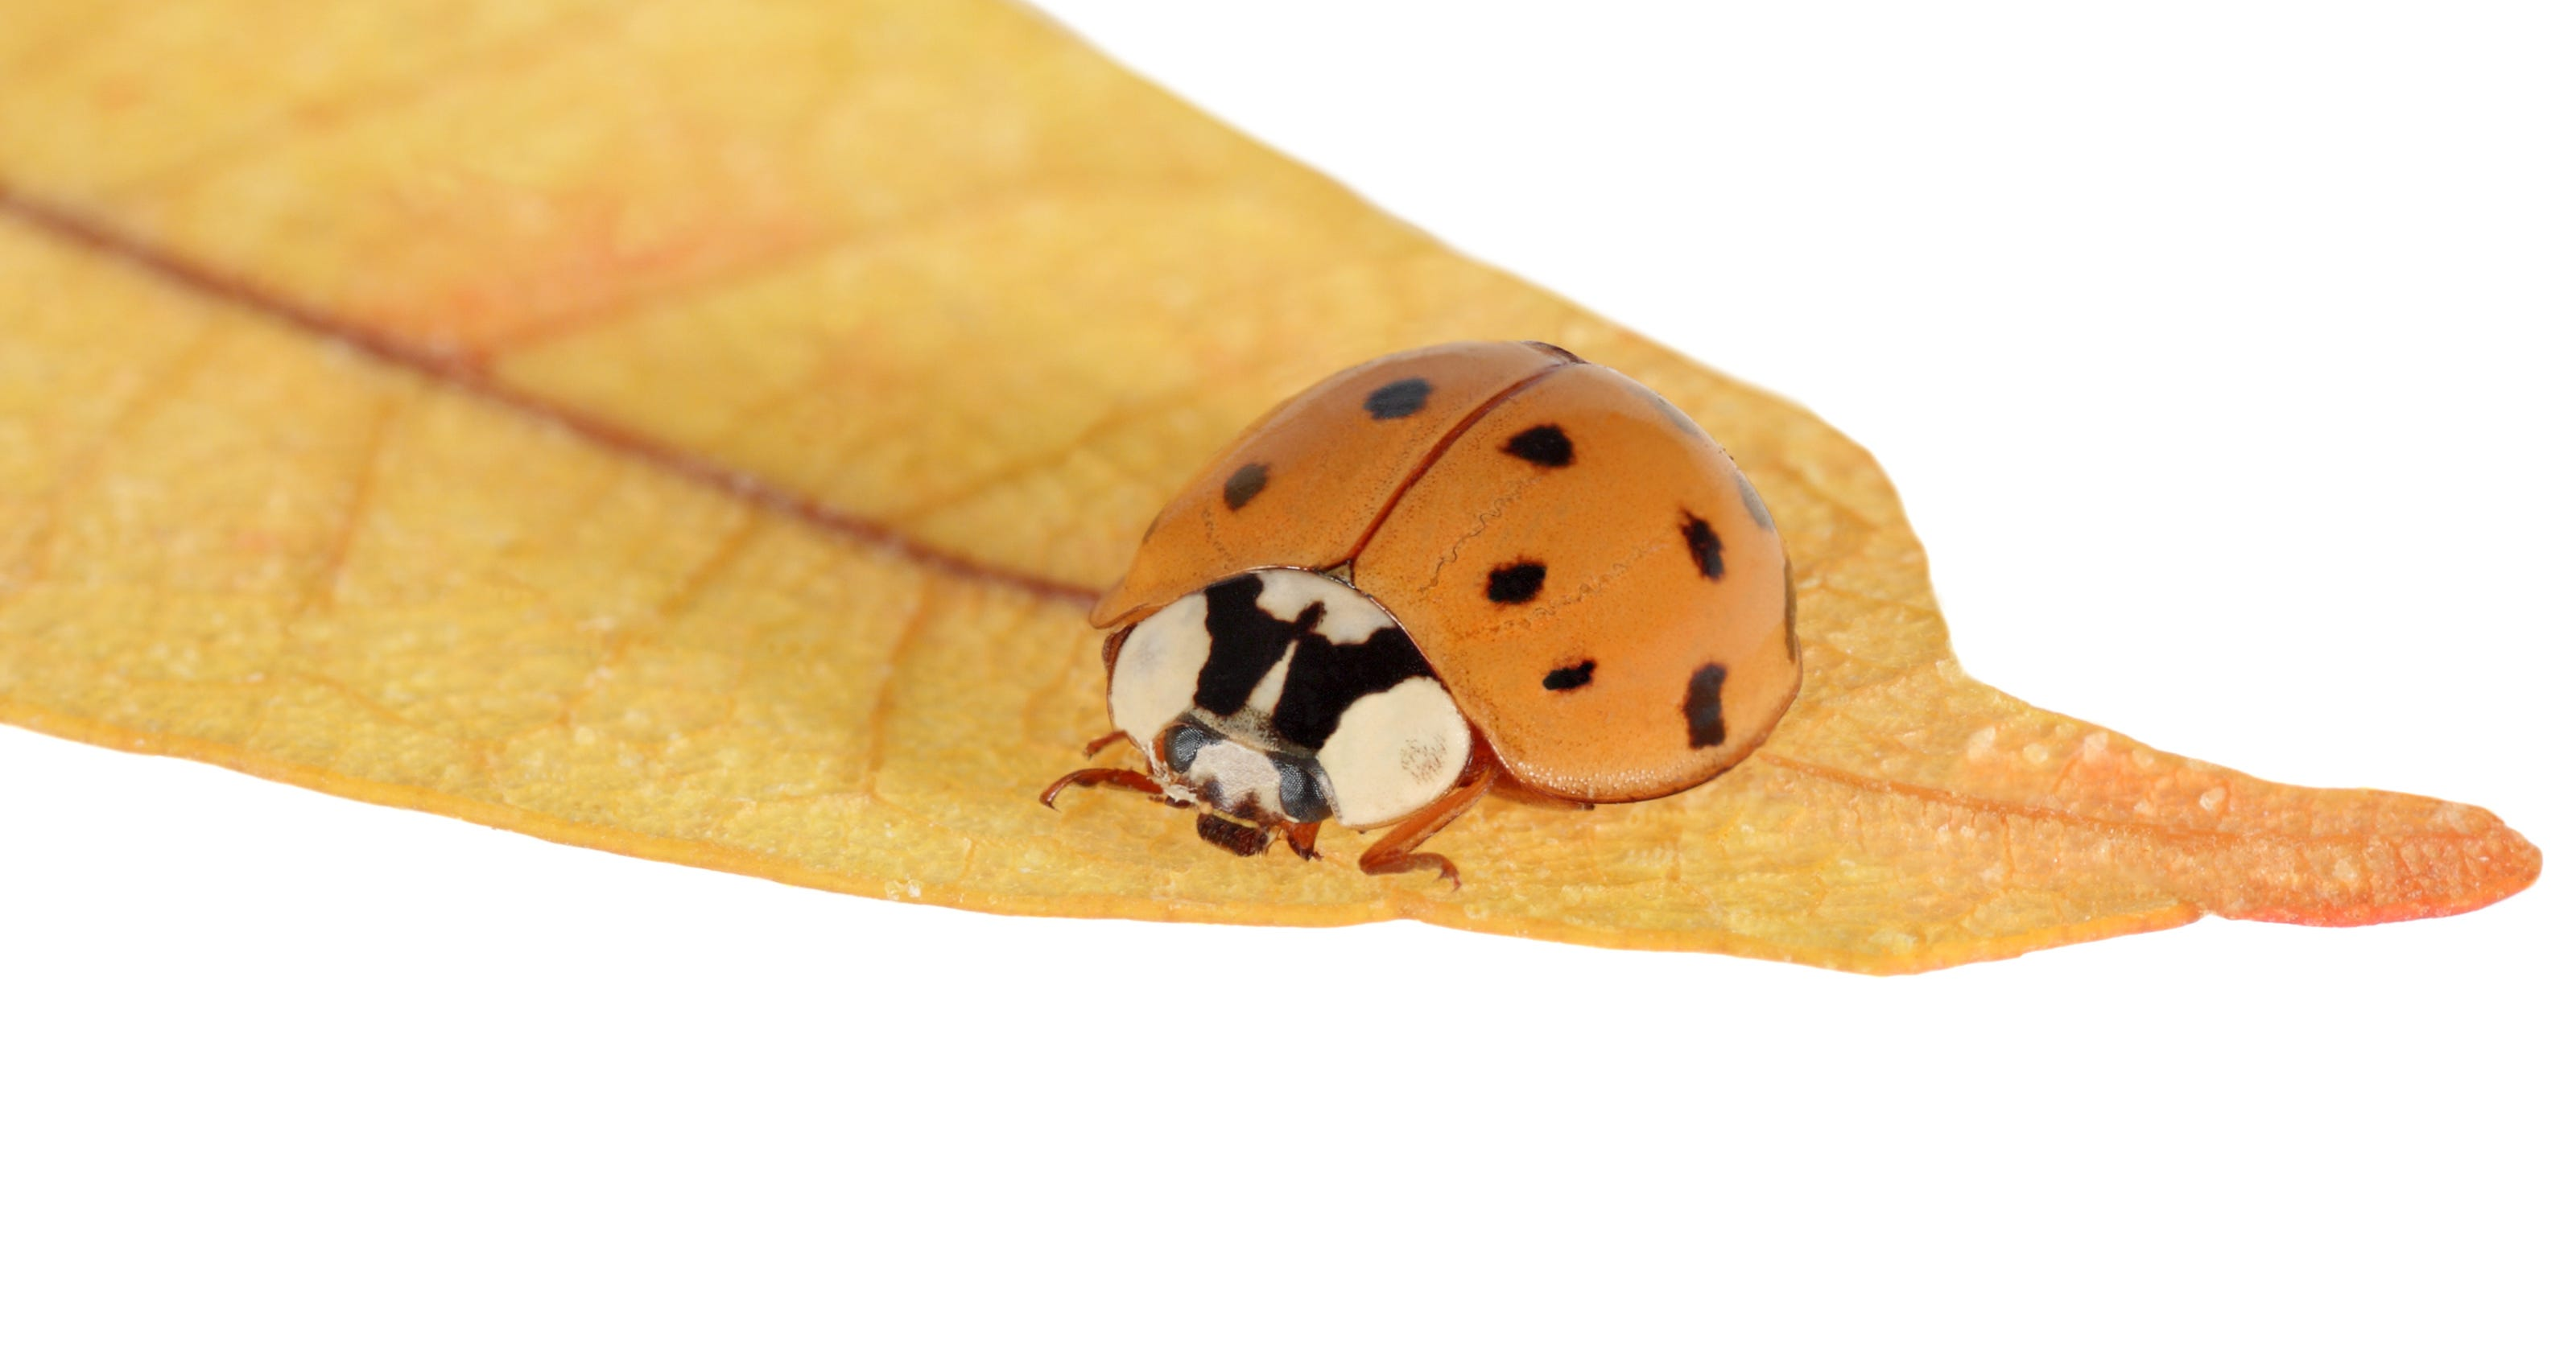 Lady bugs or Asian beetles?